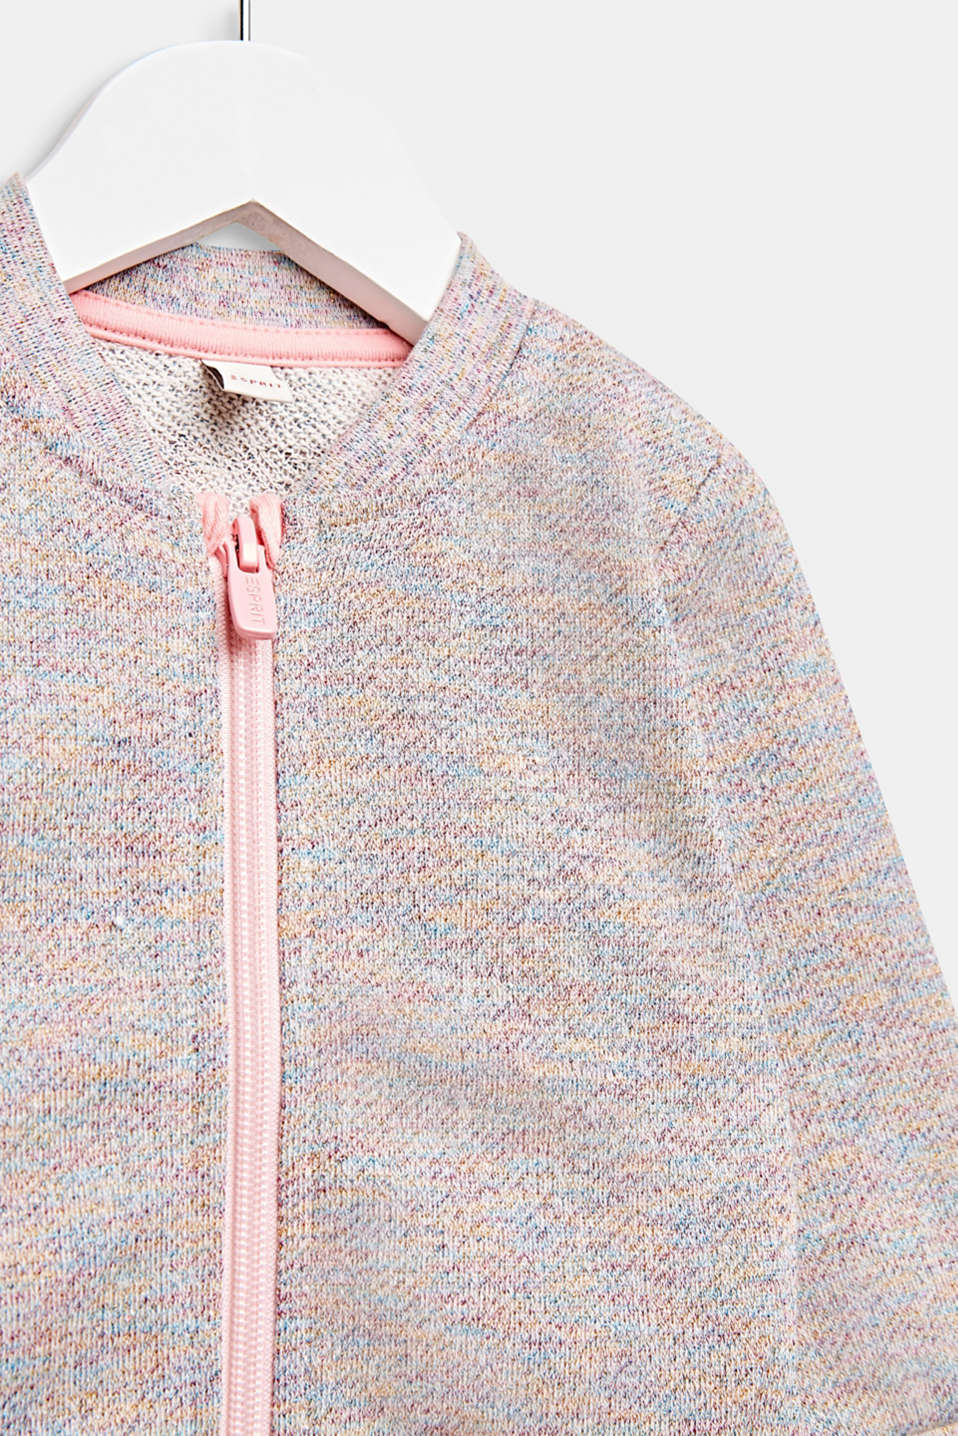 Sweatshirt cardigan with a colourful glitter look, LCMULTICOLOR, detail image number 2